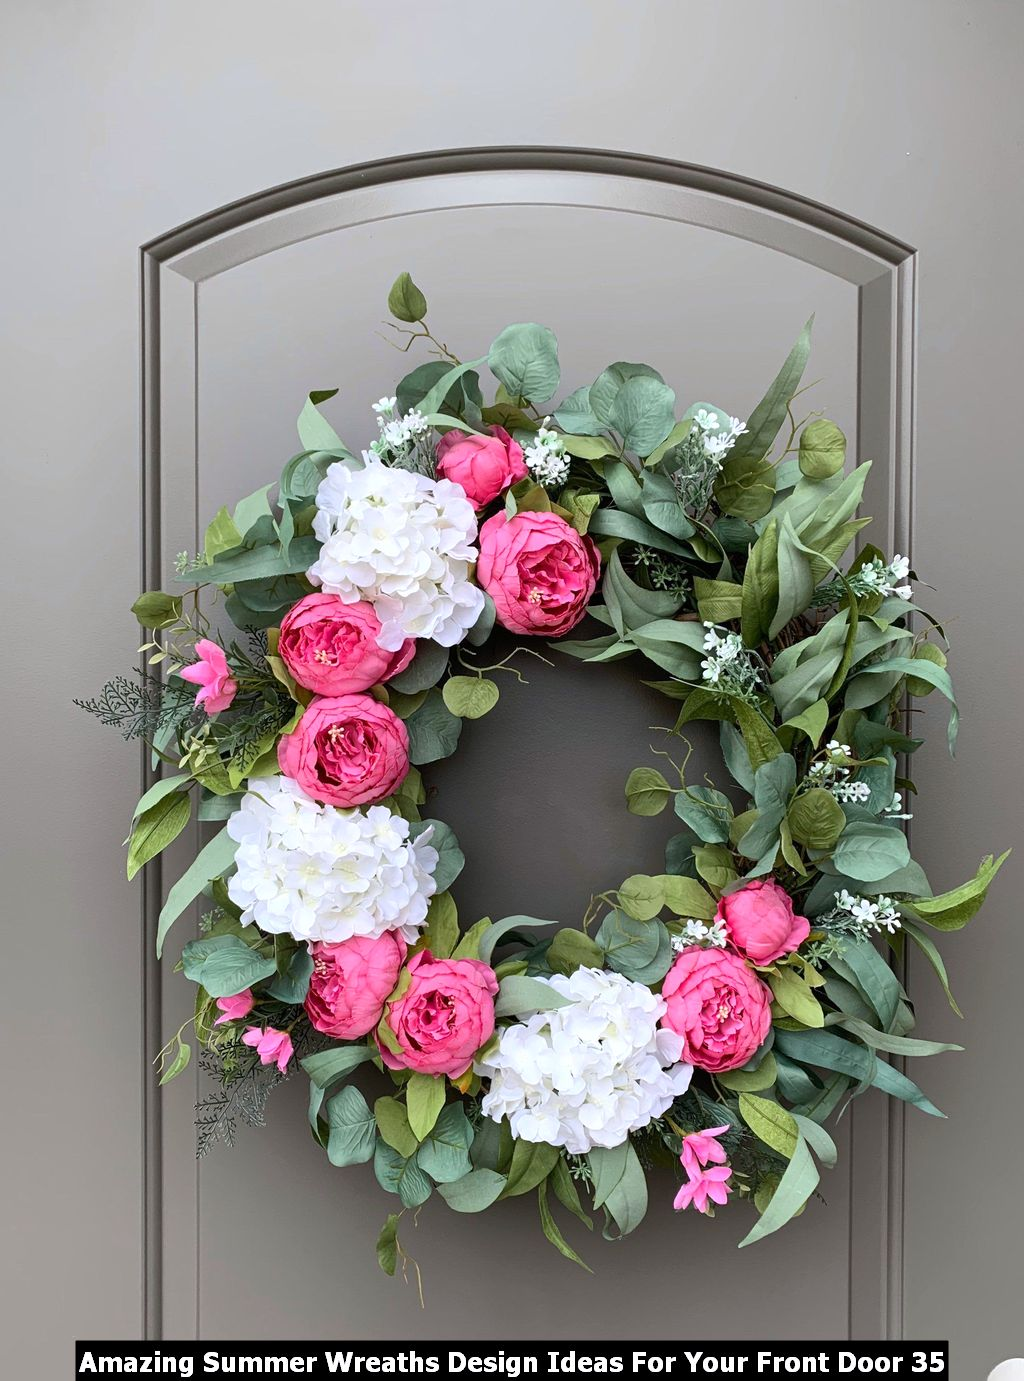 Amazing Summer Wreaths Design Ideas For Your Front Door 35